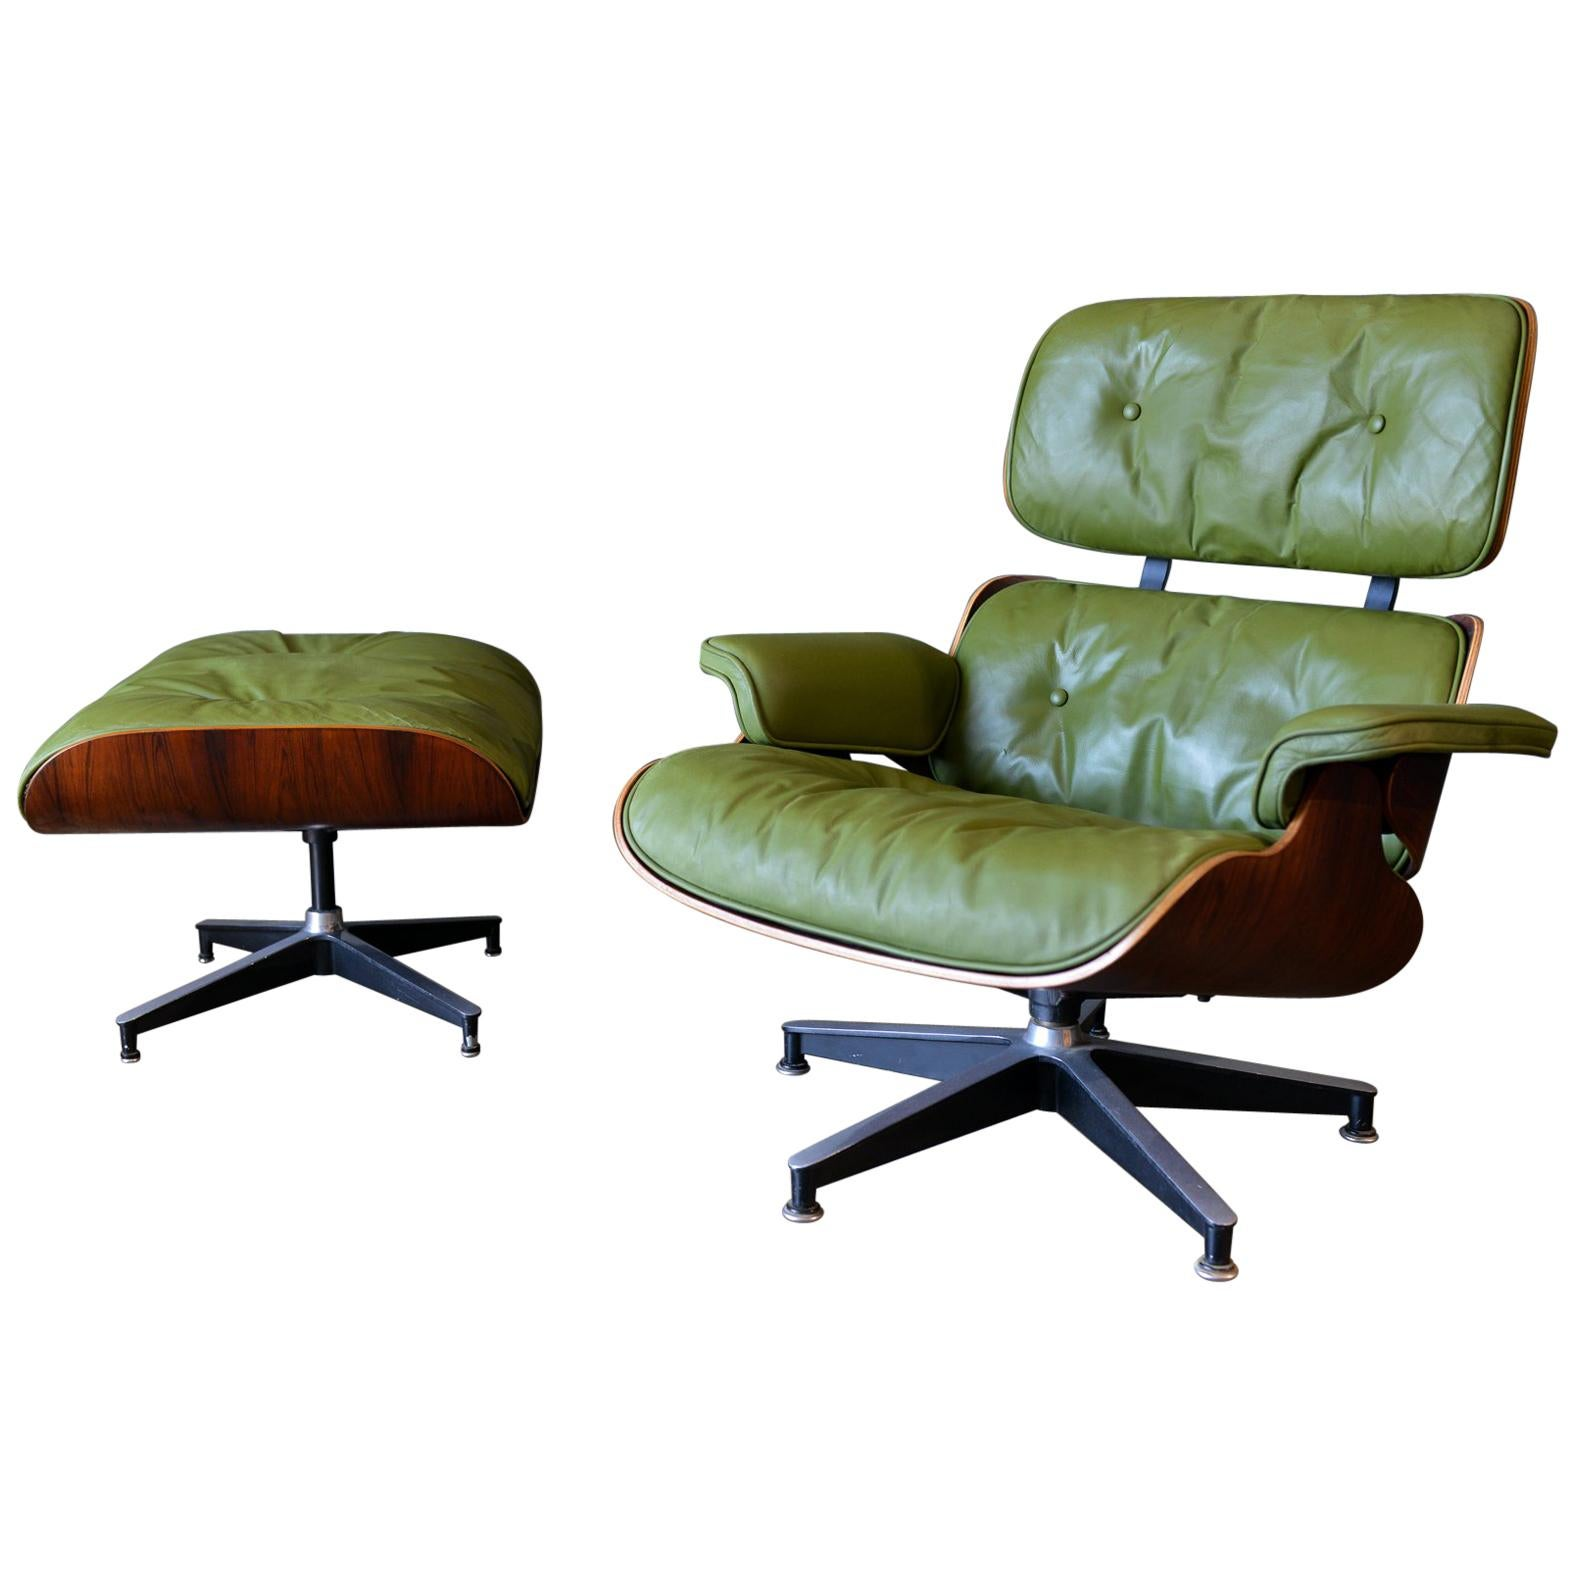 Beau Avocado Green Leather Eames Lounge Chair And Ottoman, 1967